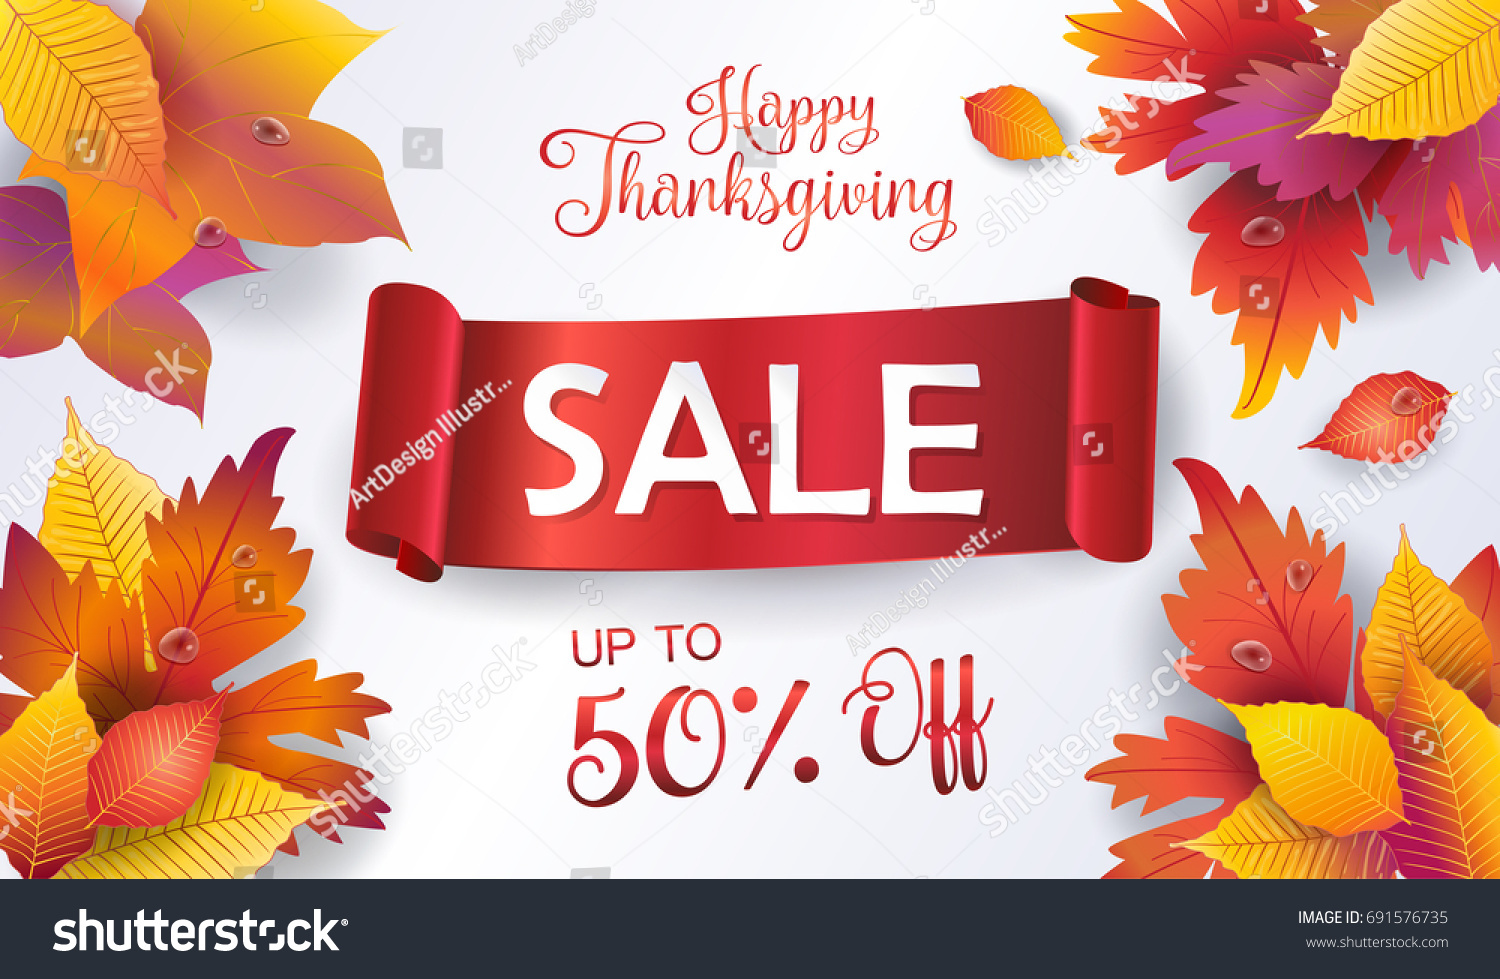 Thanksgiving sale autumn sales banner fall stock vector